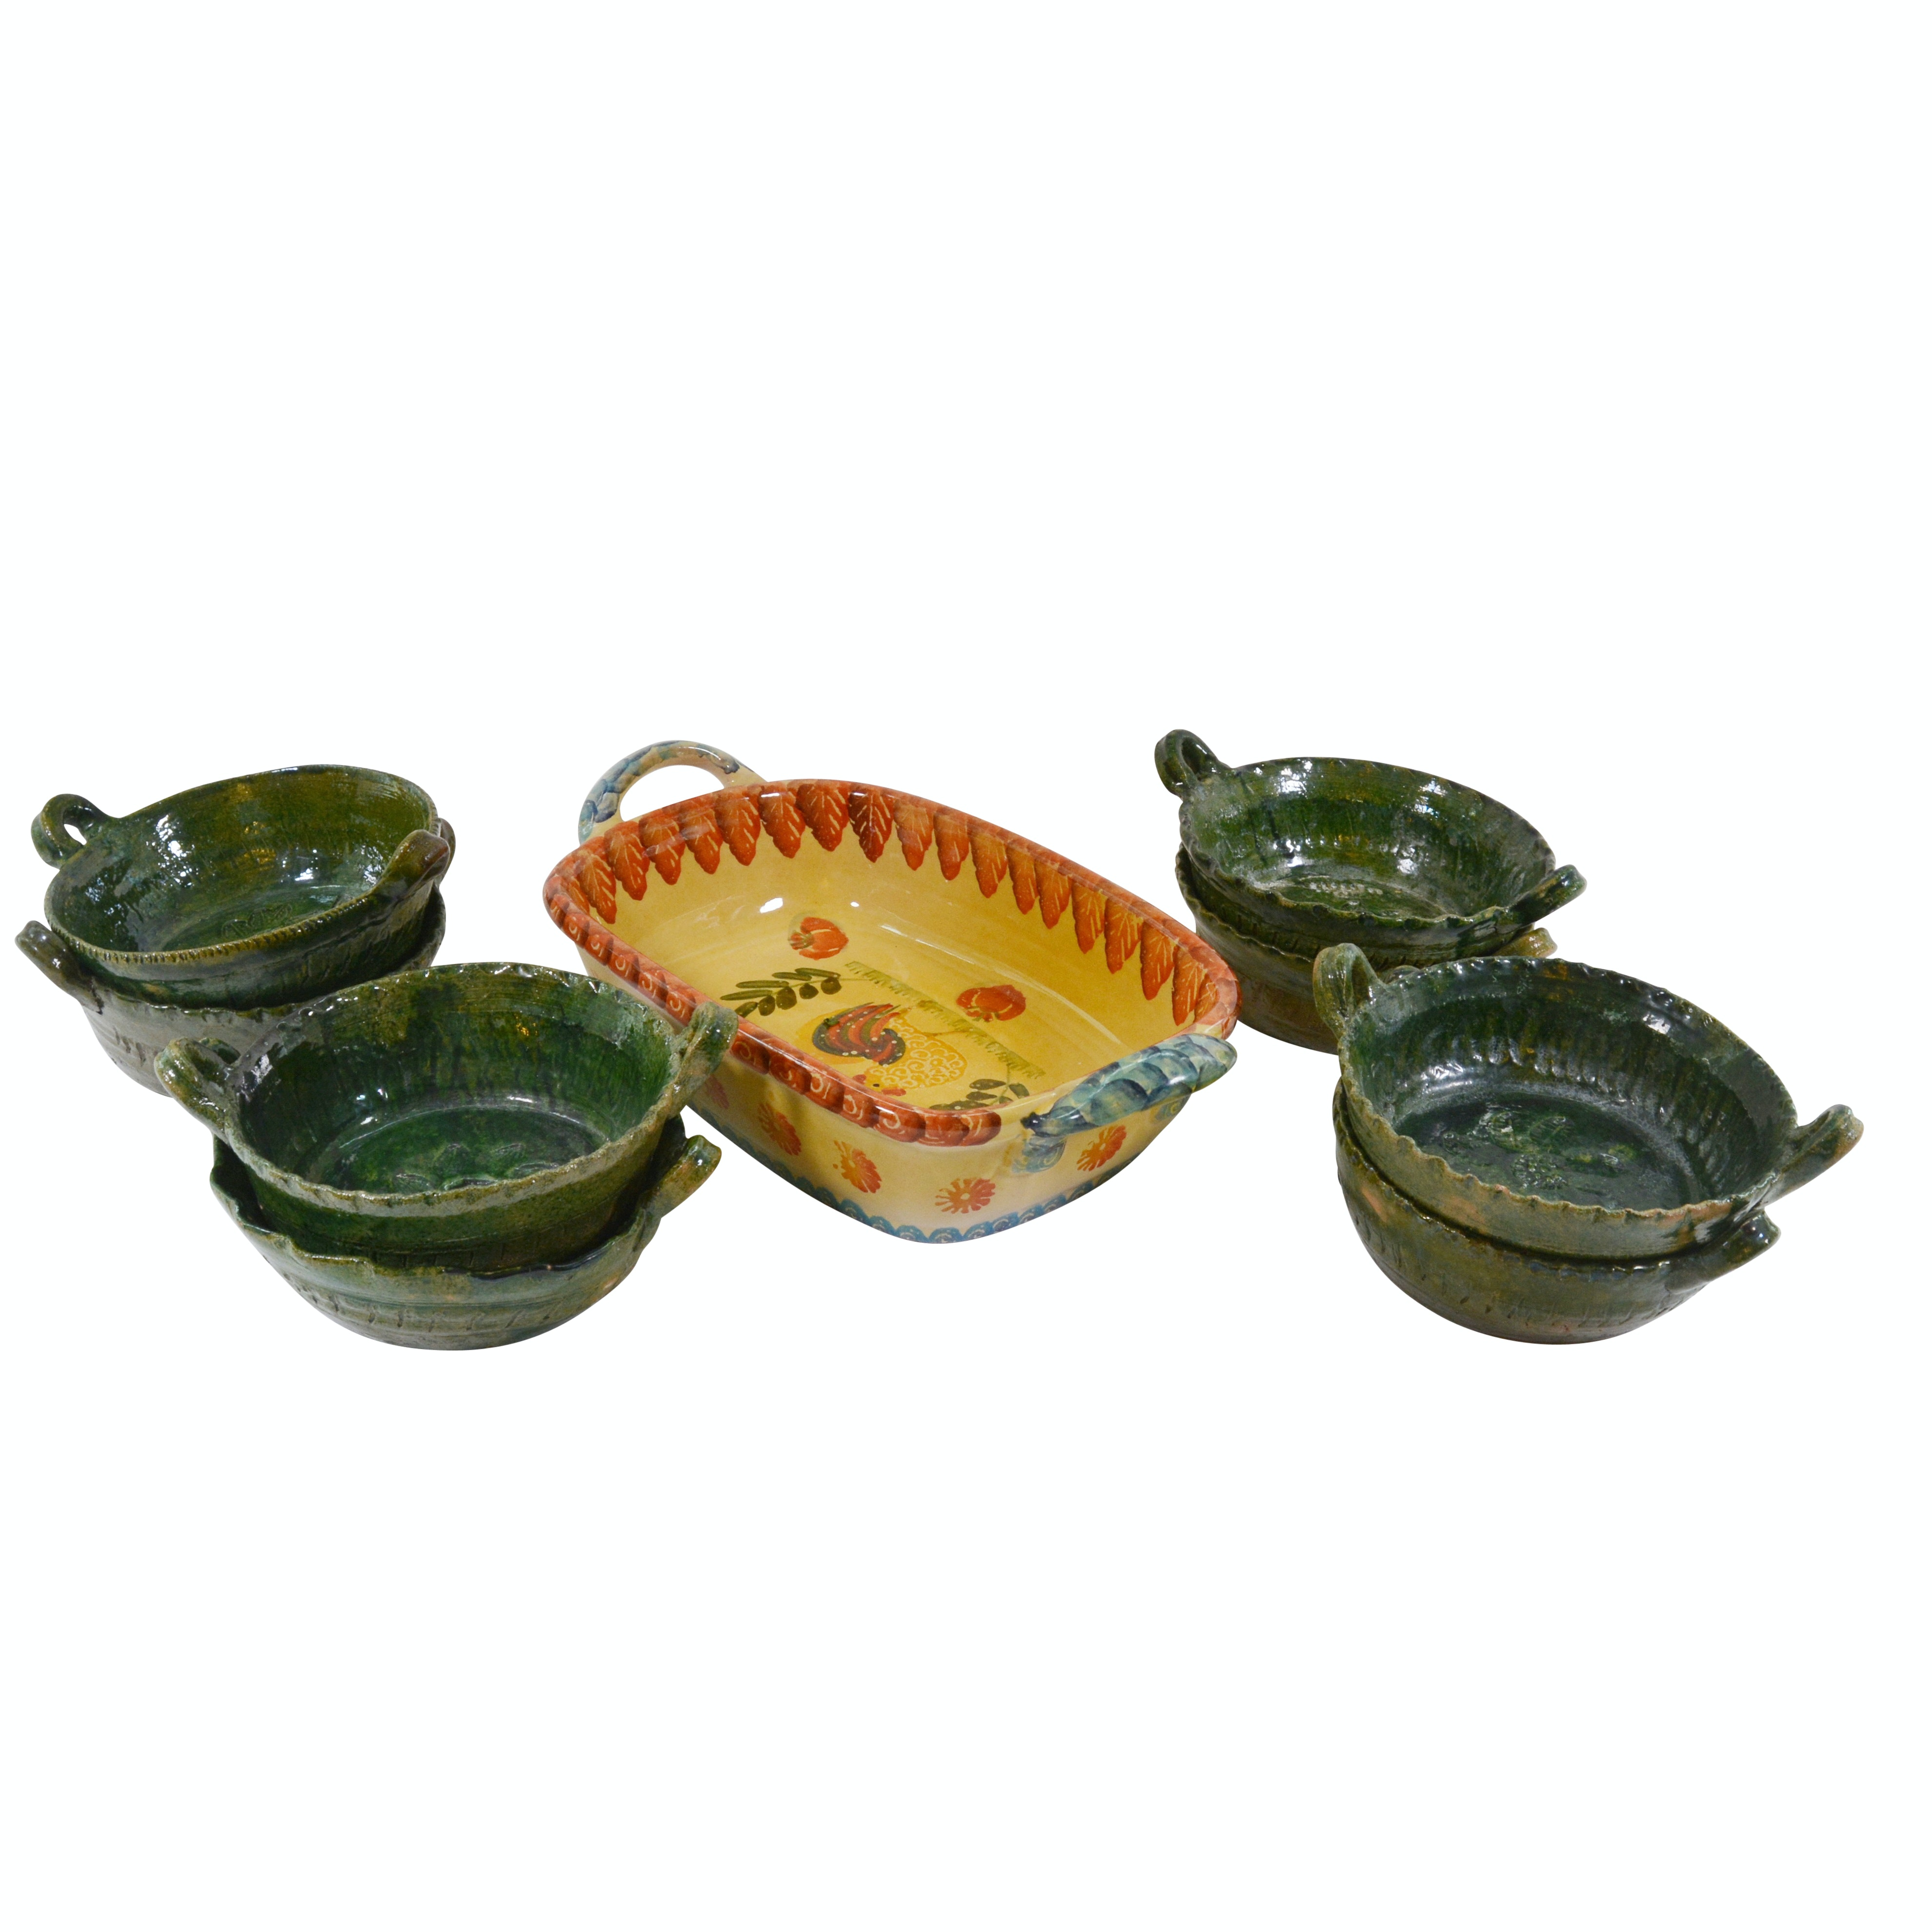 Italian Ceramic and Mexican Pottery Bakeware